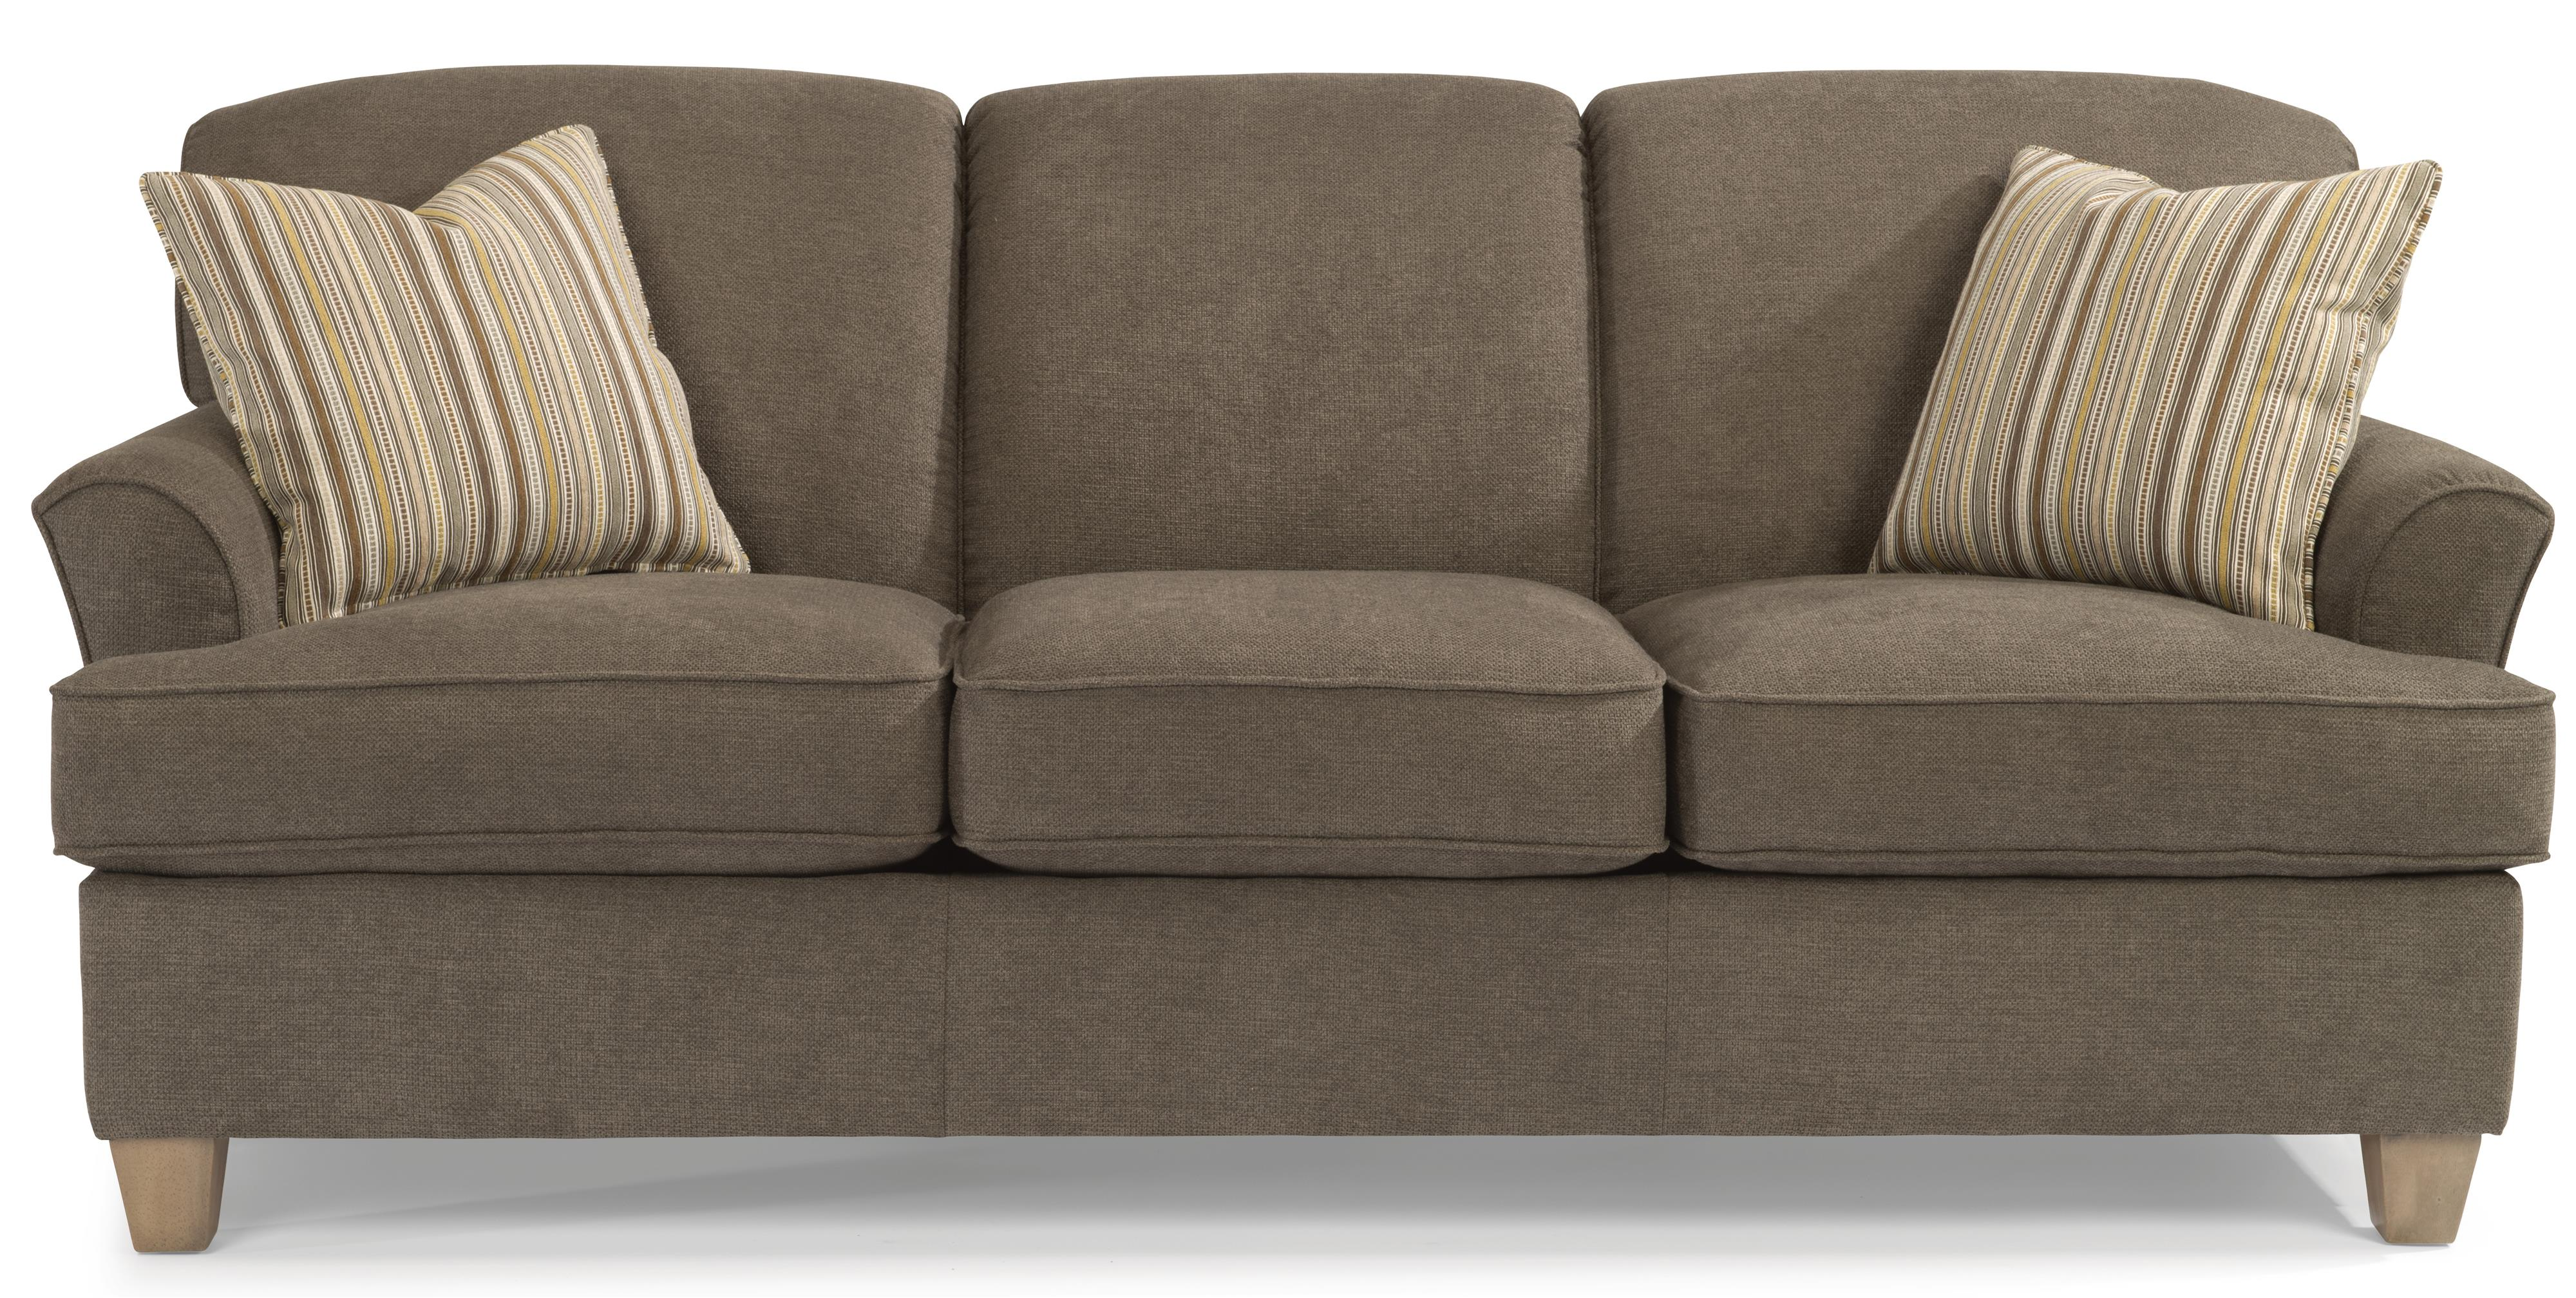 Atlantis Sofa by Flexsteel at Rooms and Rest